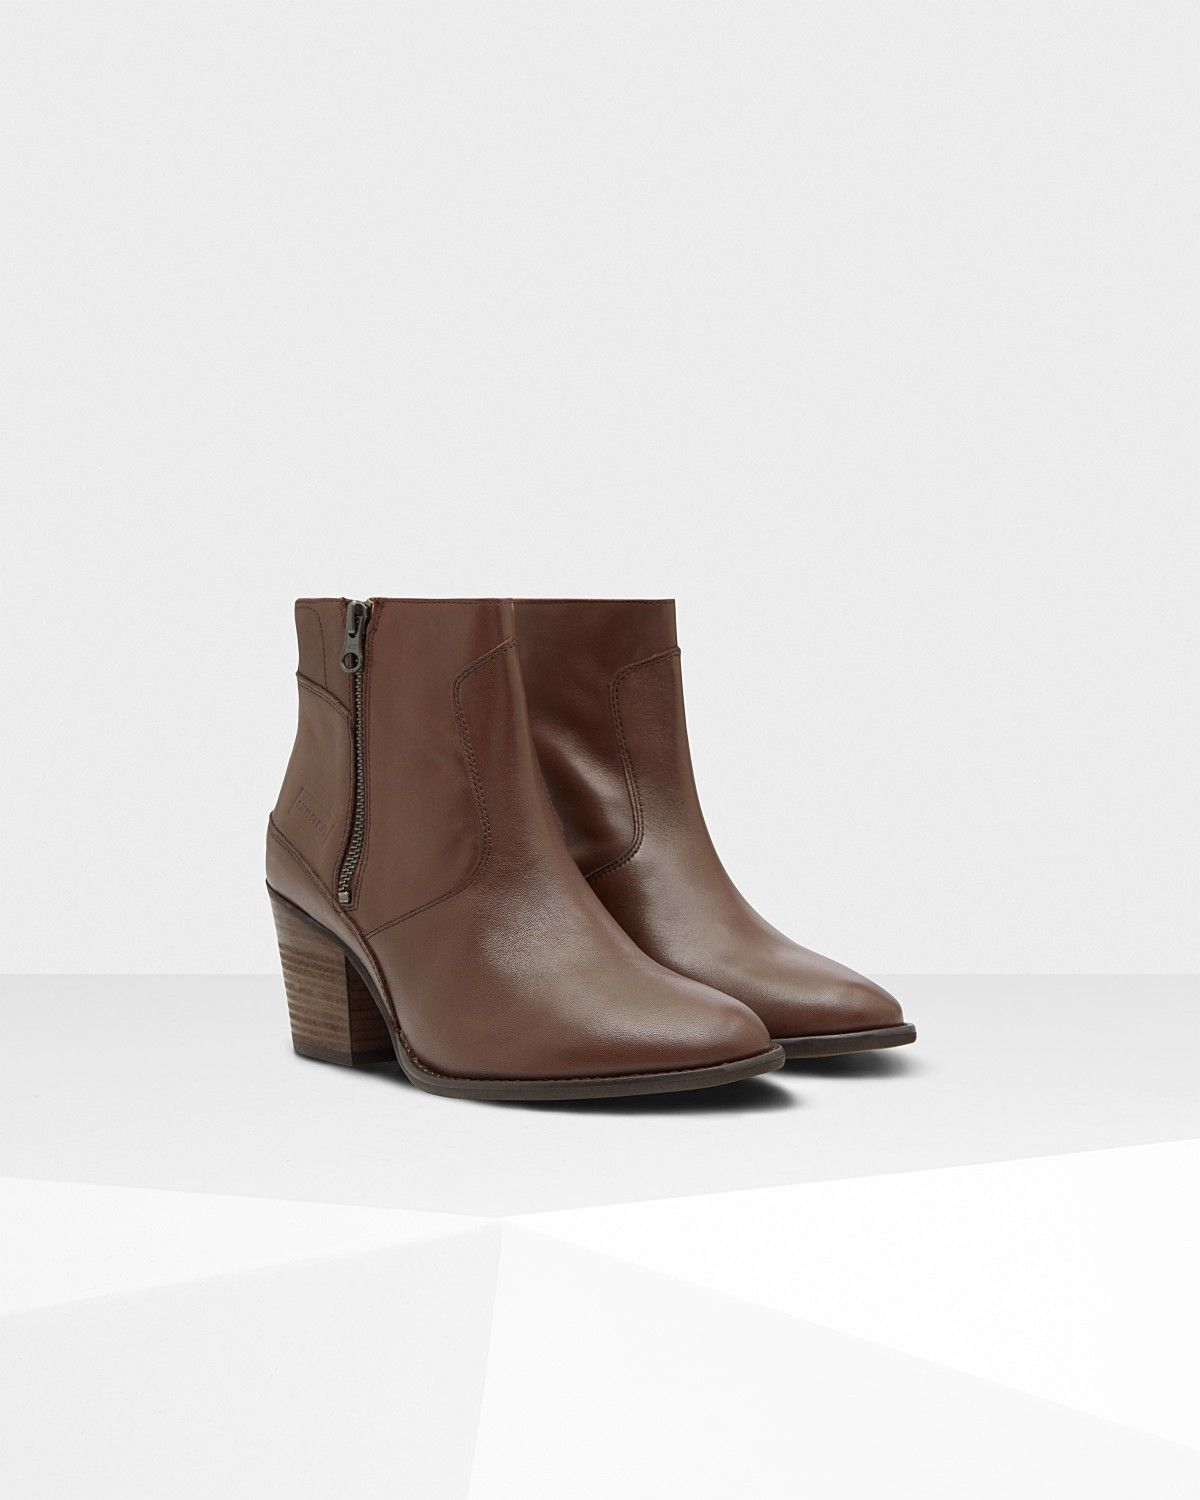 768d50e0f32af Hunter Women's Original Refined Leather Ankle Boots: Bitter Choc - Us 10.5